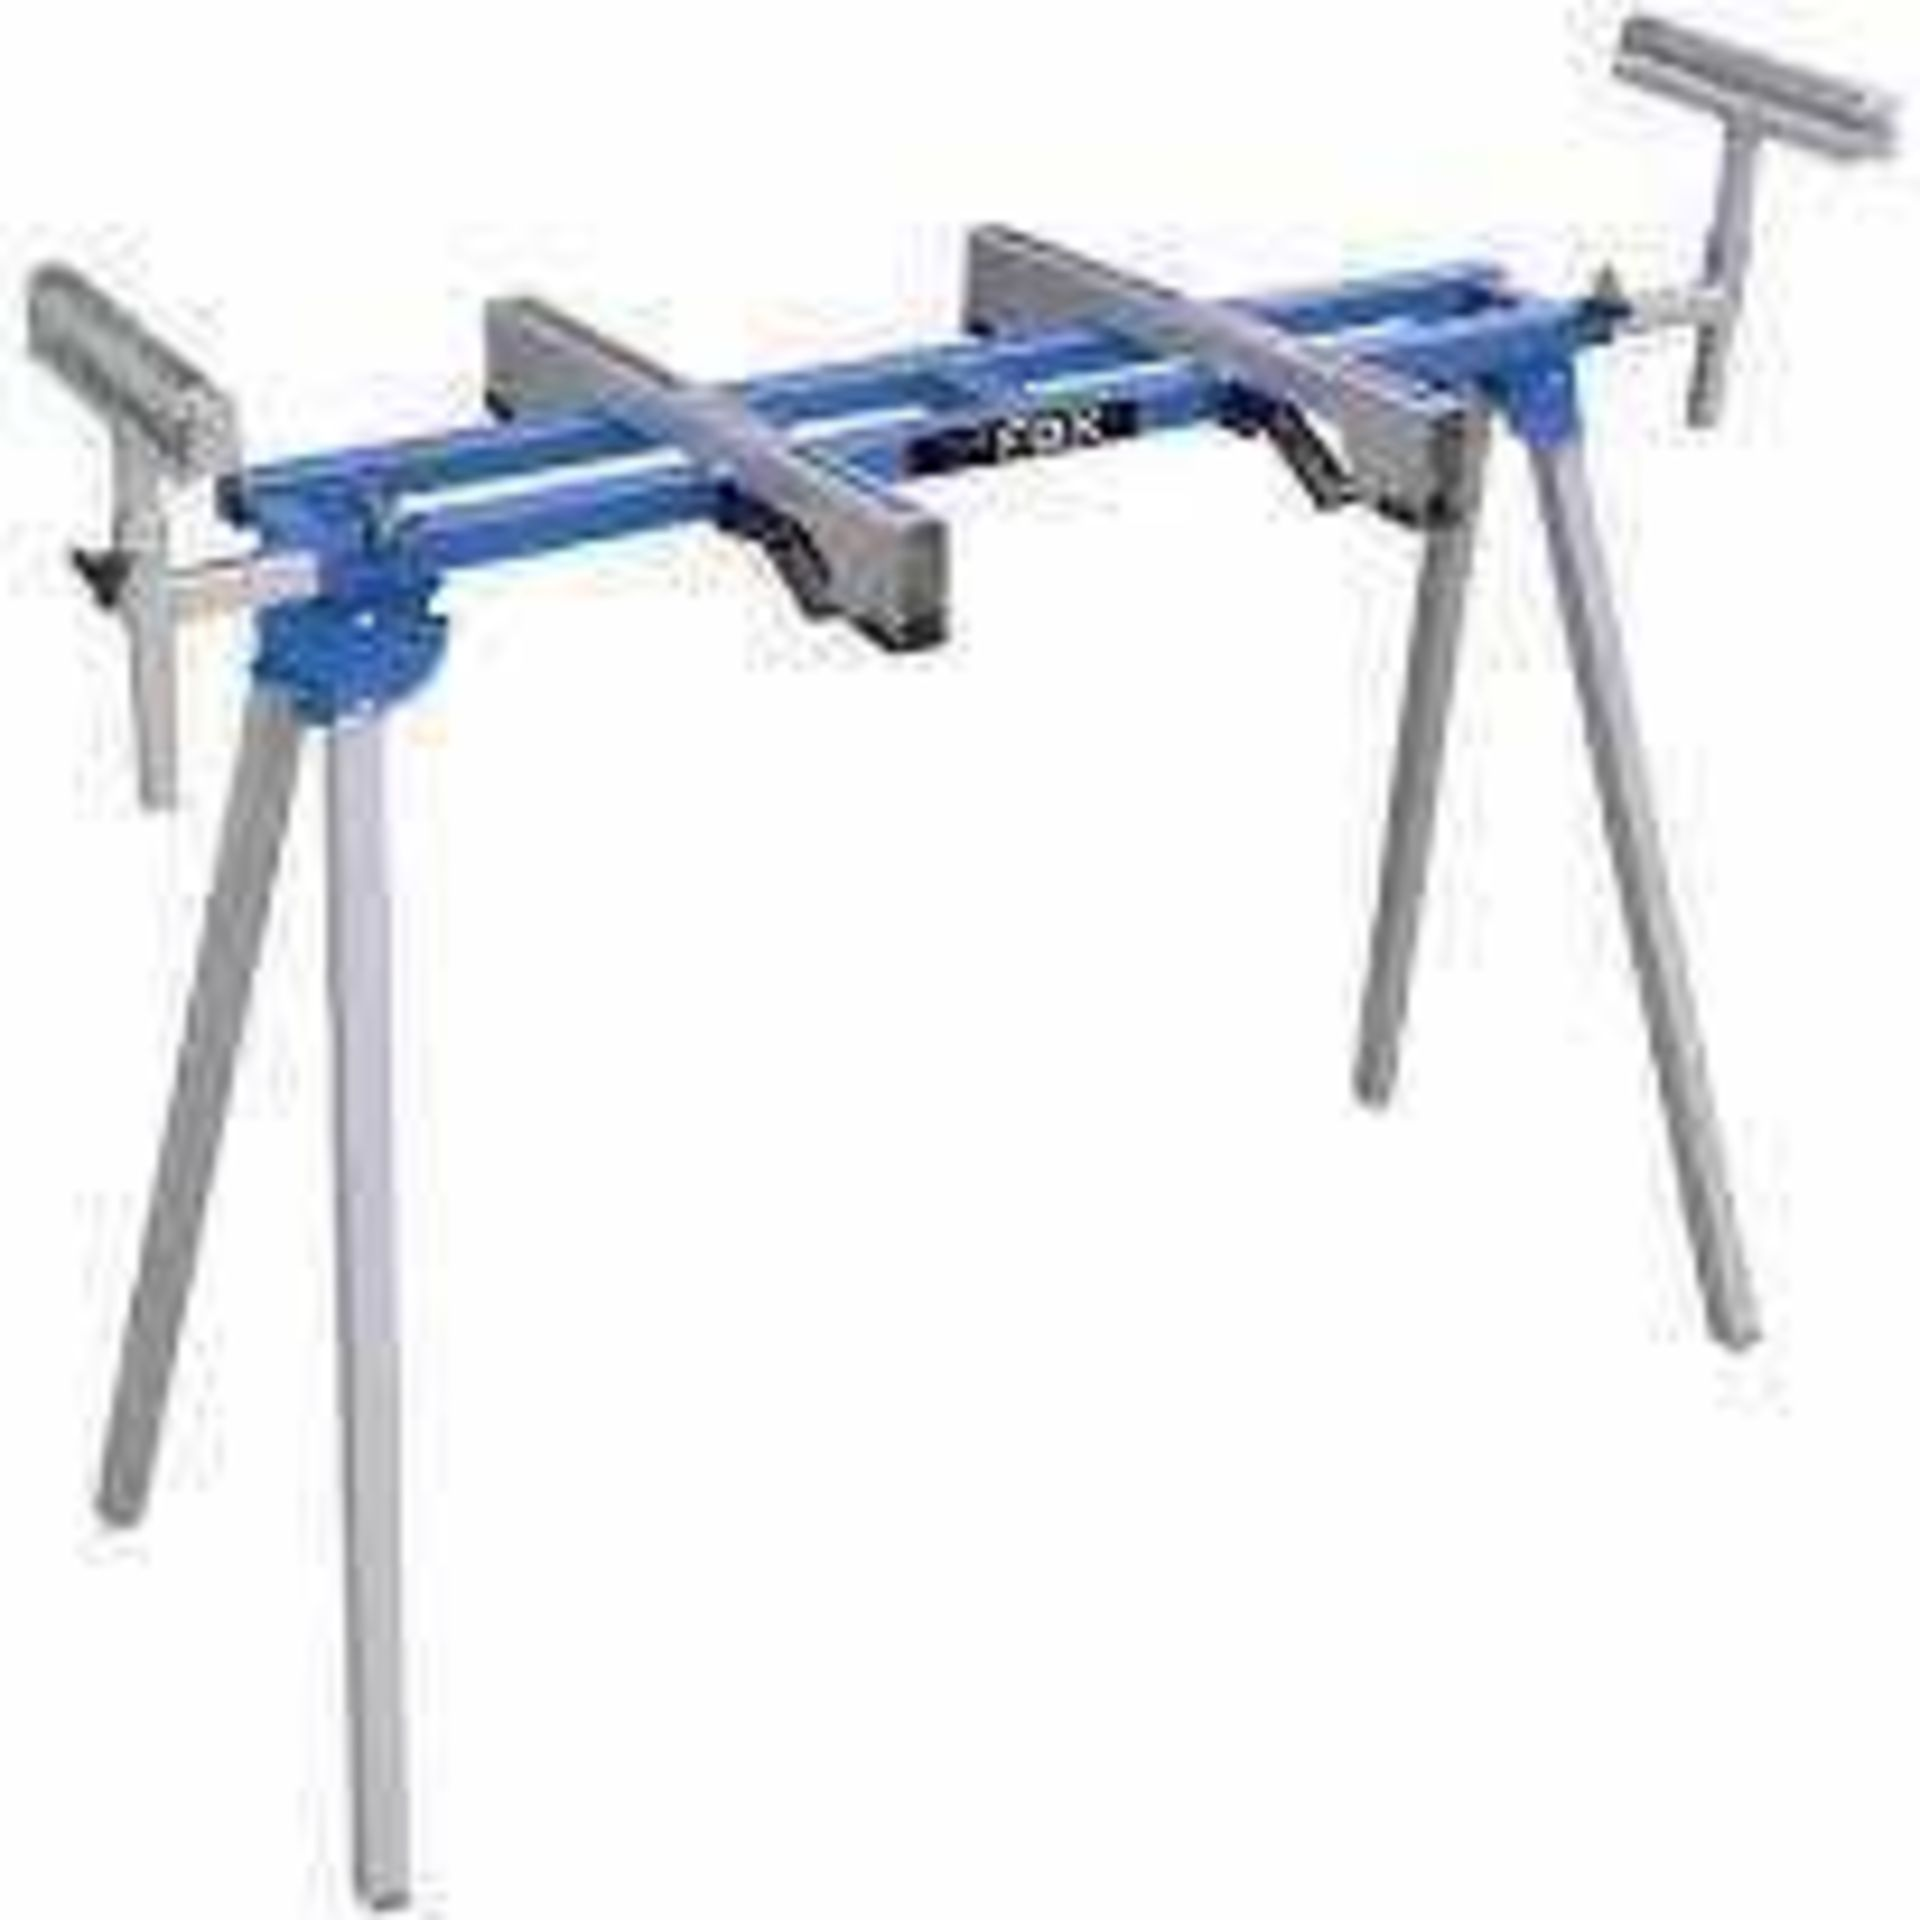 RRP £210 Boxed Fox Universal Portable Work Stand 1970Mm With Transport Strap And Folding Stand